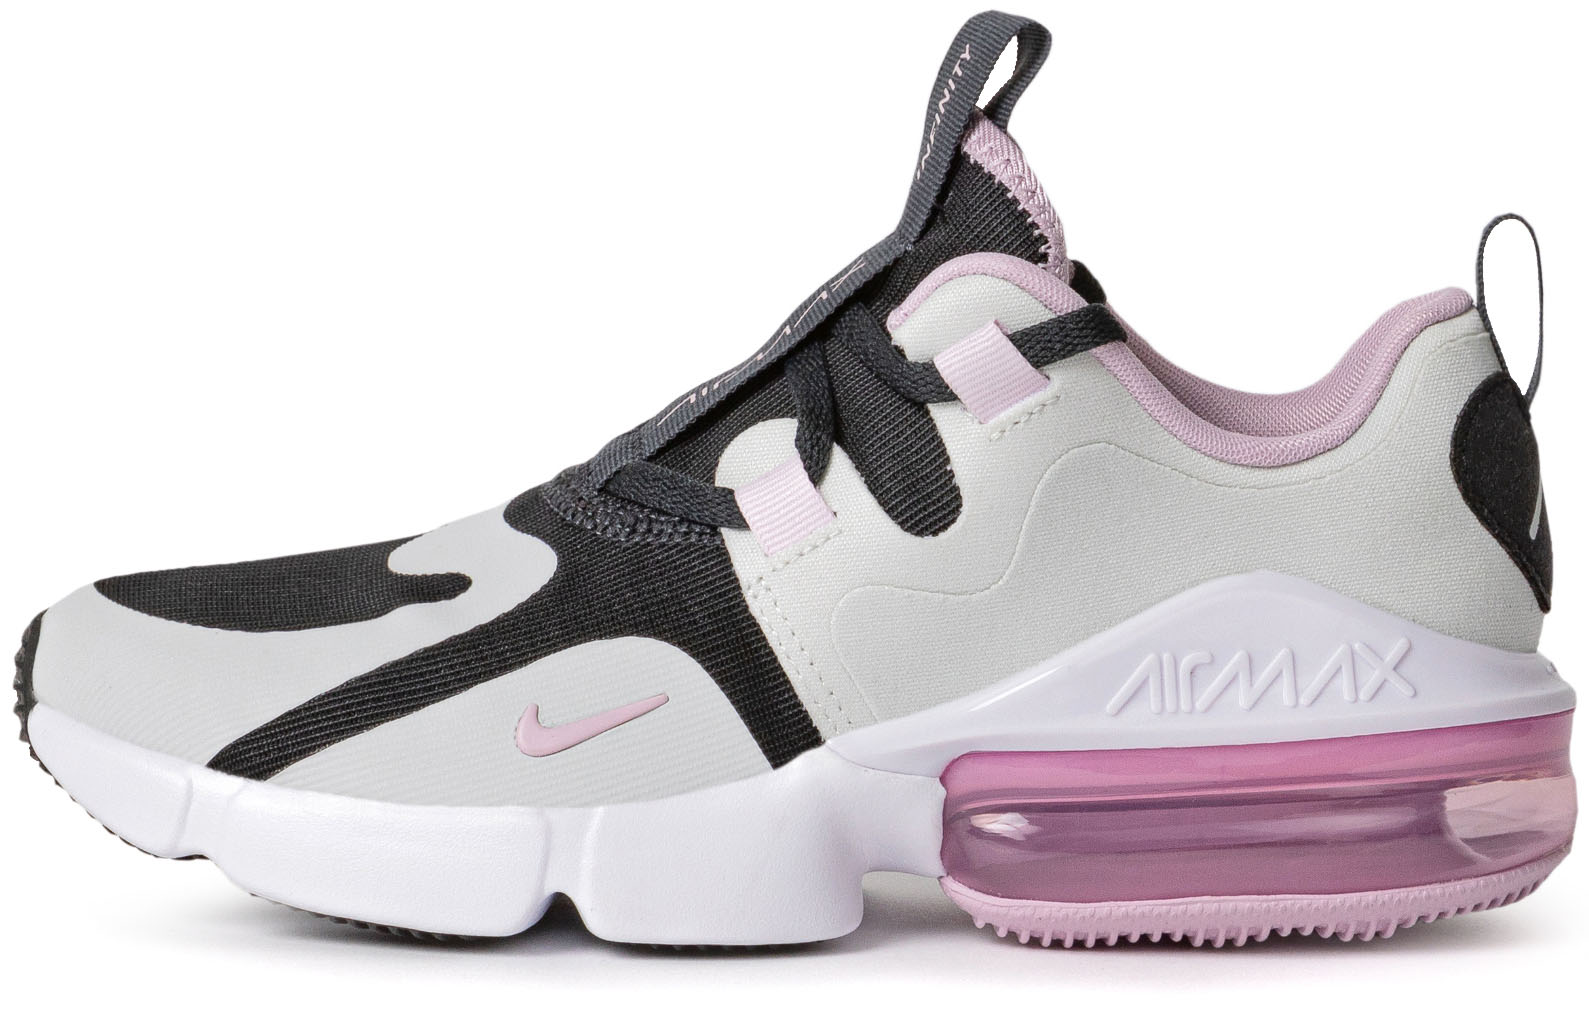 Nike Кроссовки детские Nike Air Max Infinity (Gs), размер 37.5 кроссовки детские nike цвет синий